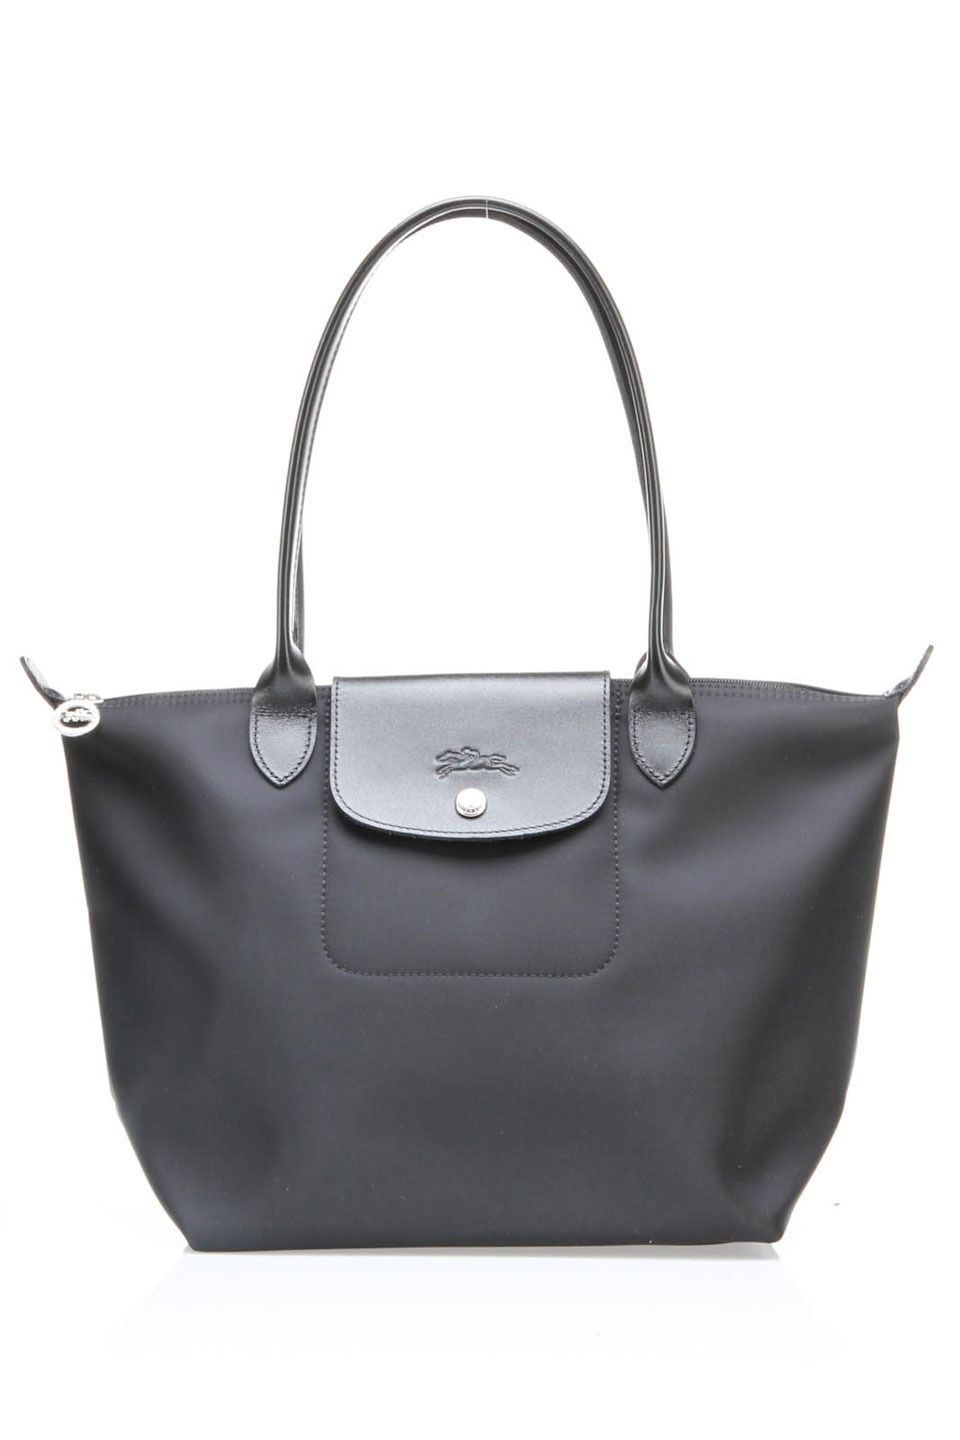 e79062599a98 Longchamp Small Le Pliage Tote In Black - Beyond the Rack. WANT IT ...